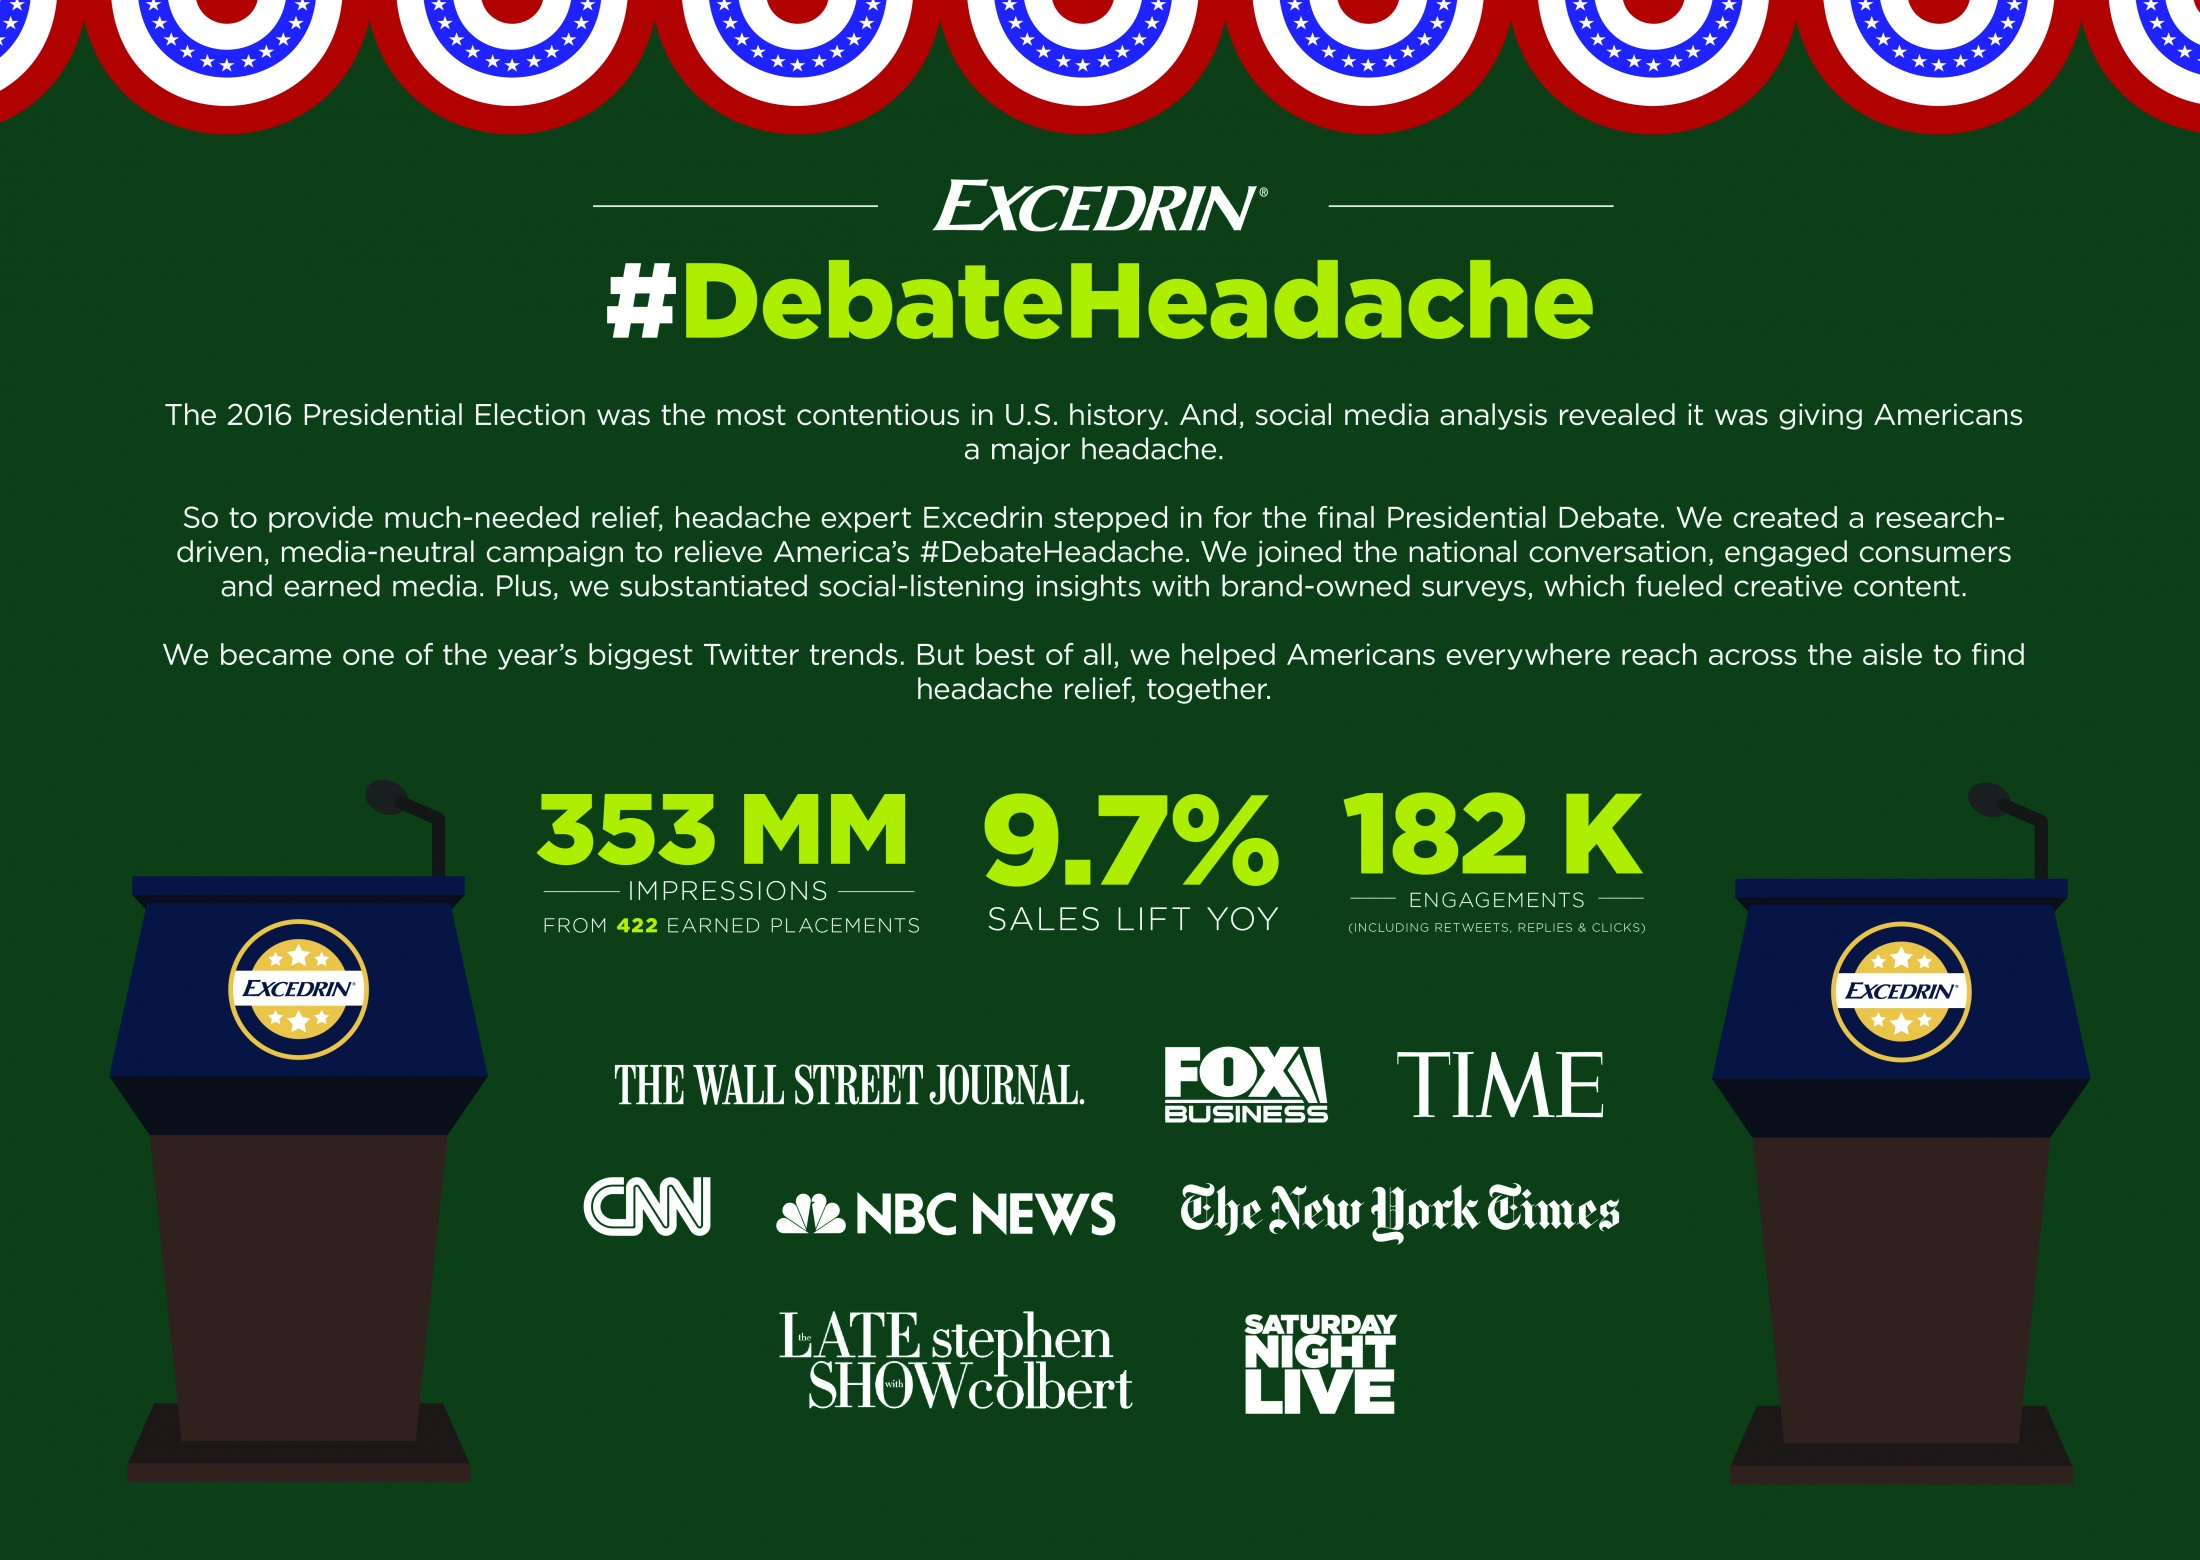 GSK Consumer Healthcare, Excedrin - The Debate Headache | Clios